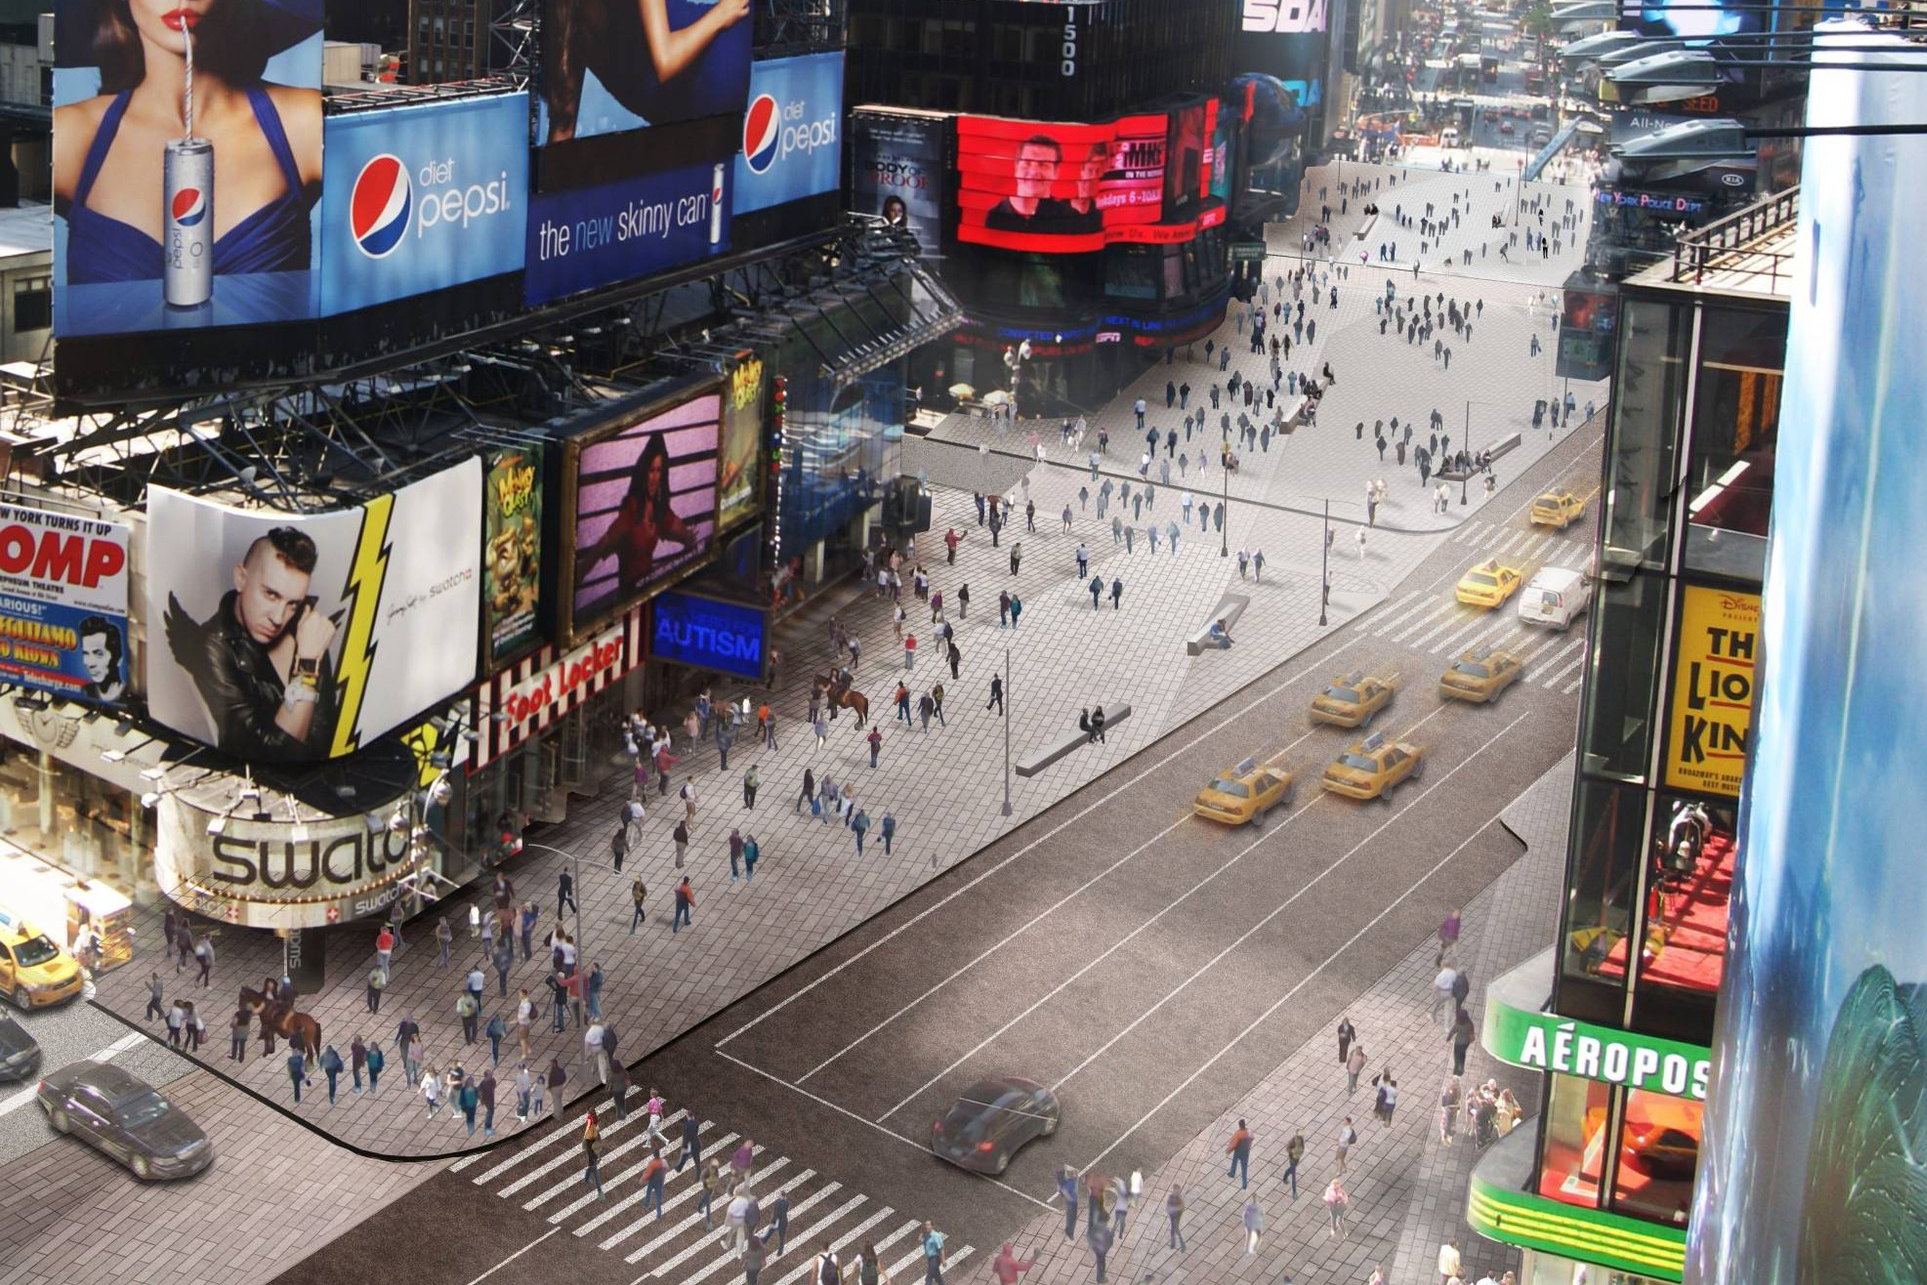 Times Square Finally Grows Up  Architect Magazine  Urban Design, Urban Development -2199